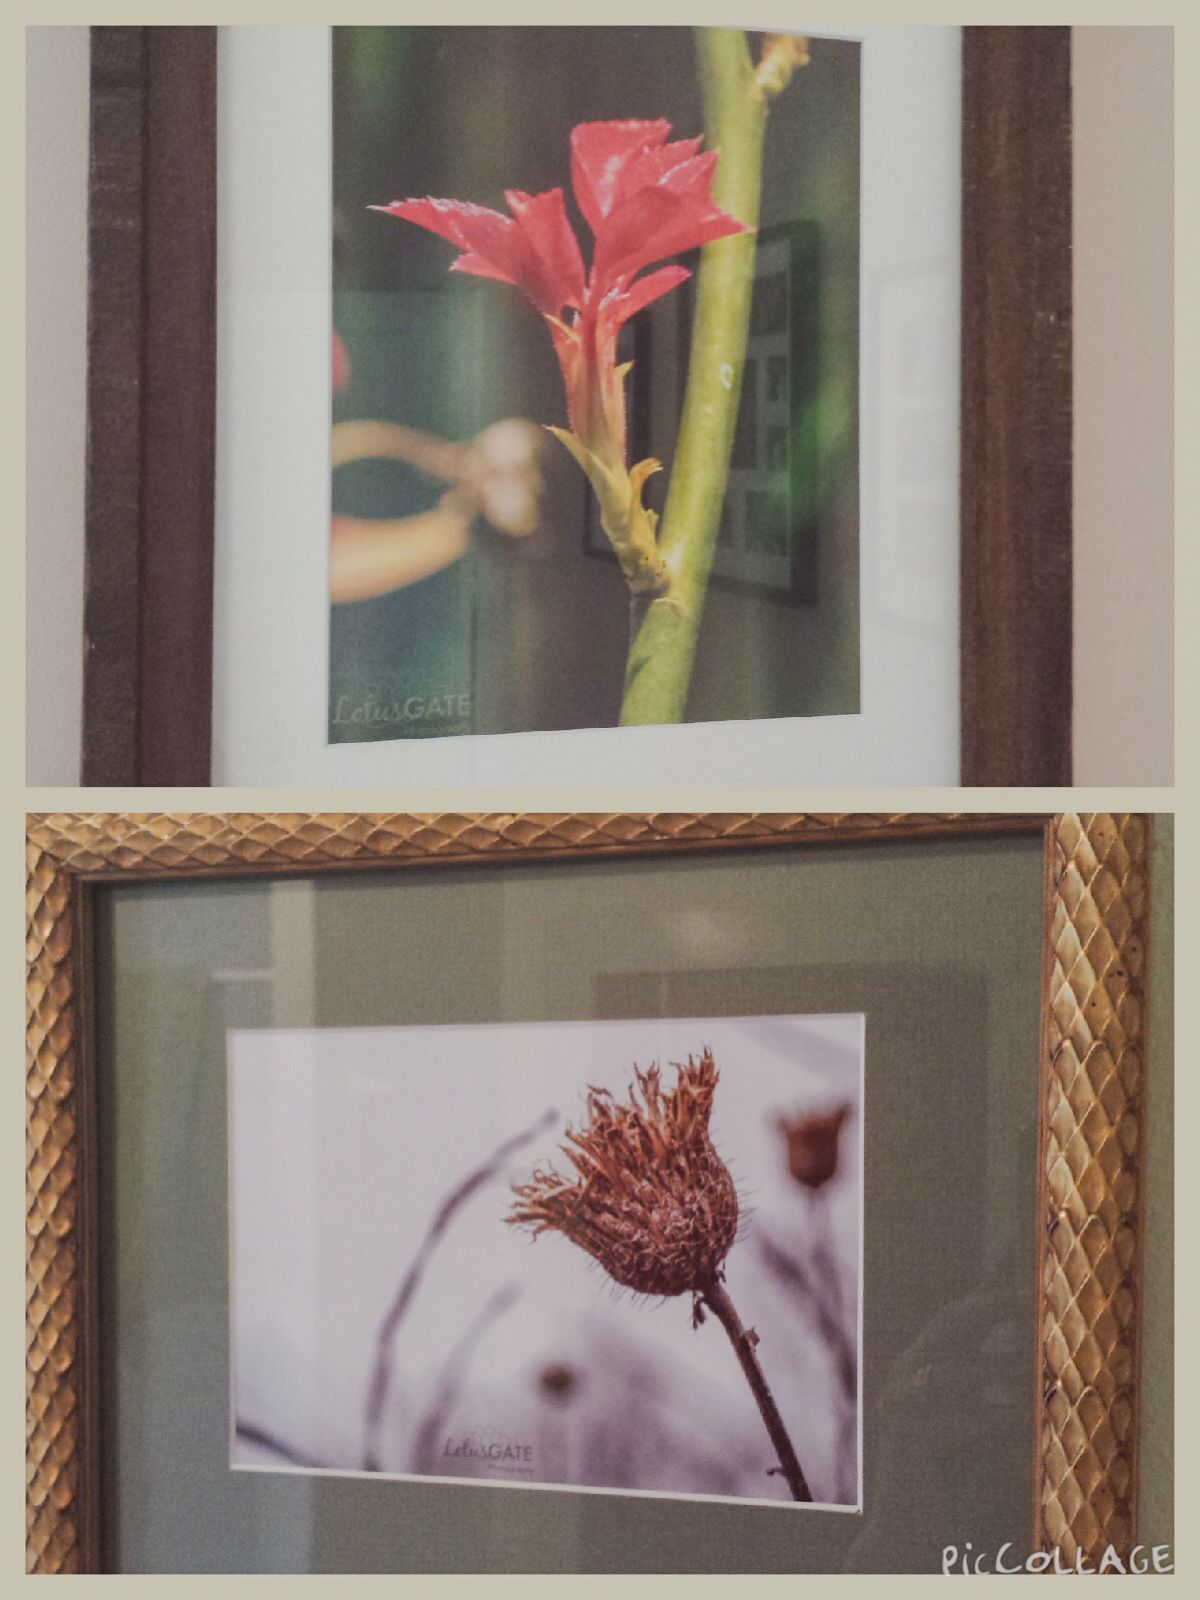 Perfect frames for Lotus Gate Photography nature prints! | Cool Ways ...